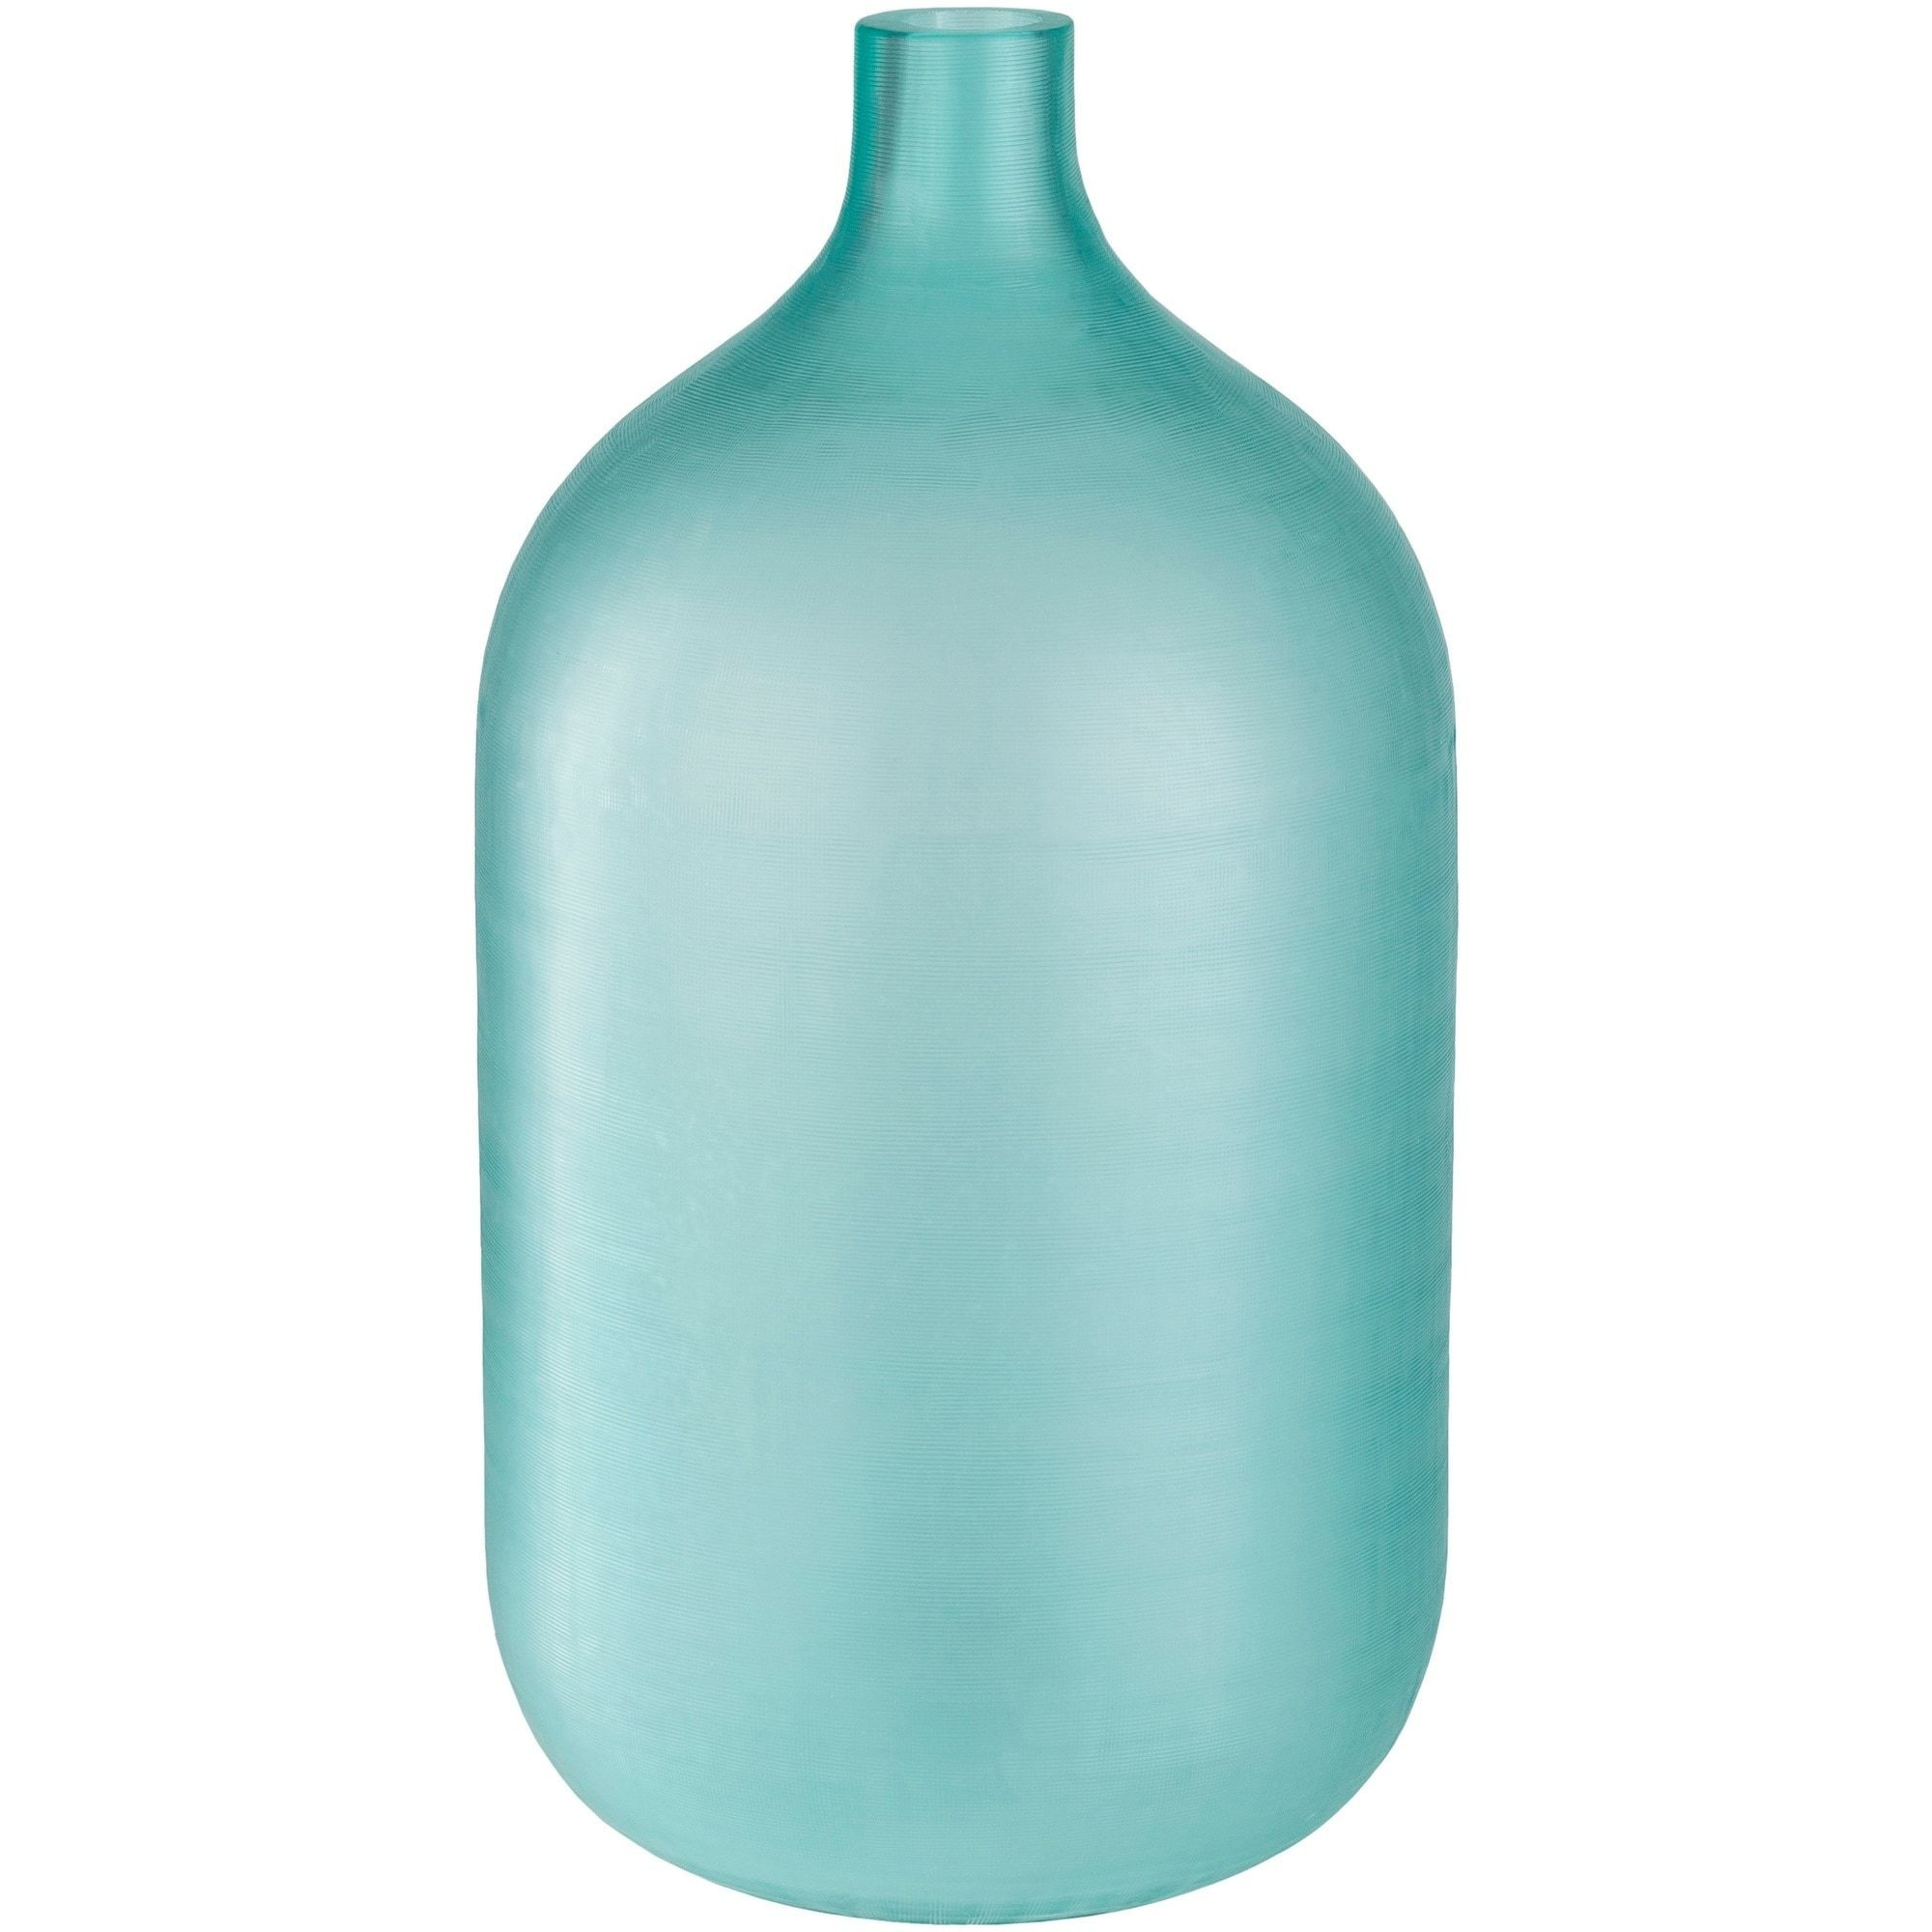 20 Inch Glass Vase Of Eudes Teal Glass Modern Decorative Vase 5 to 10 Inches Blue for Eudes Teal Glass Modern Decorative Vase 15 to 20 Inches Blue